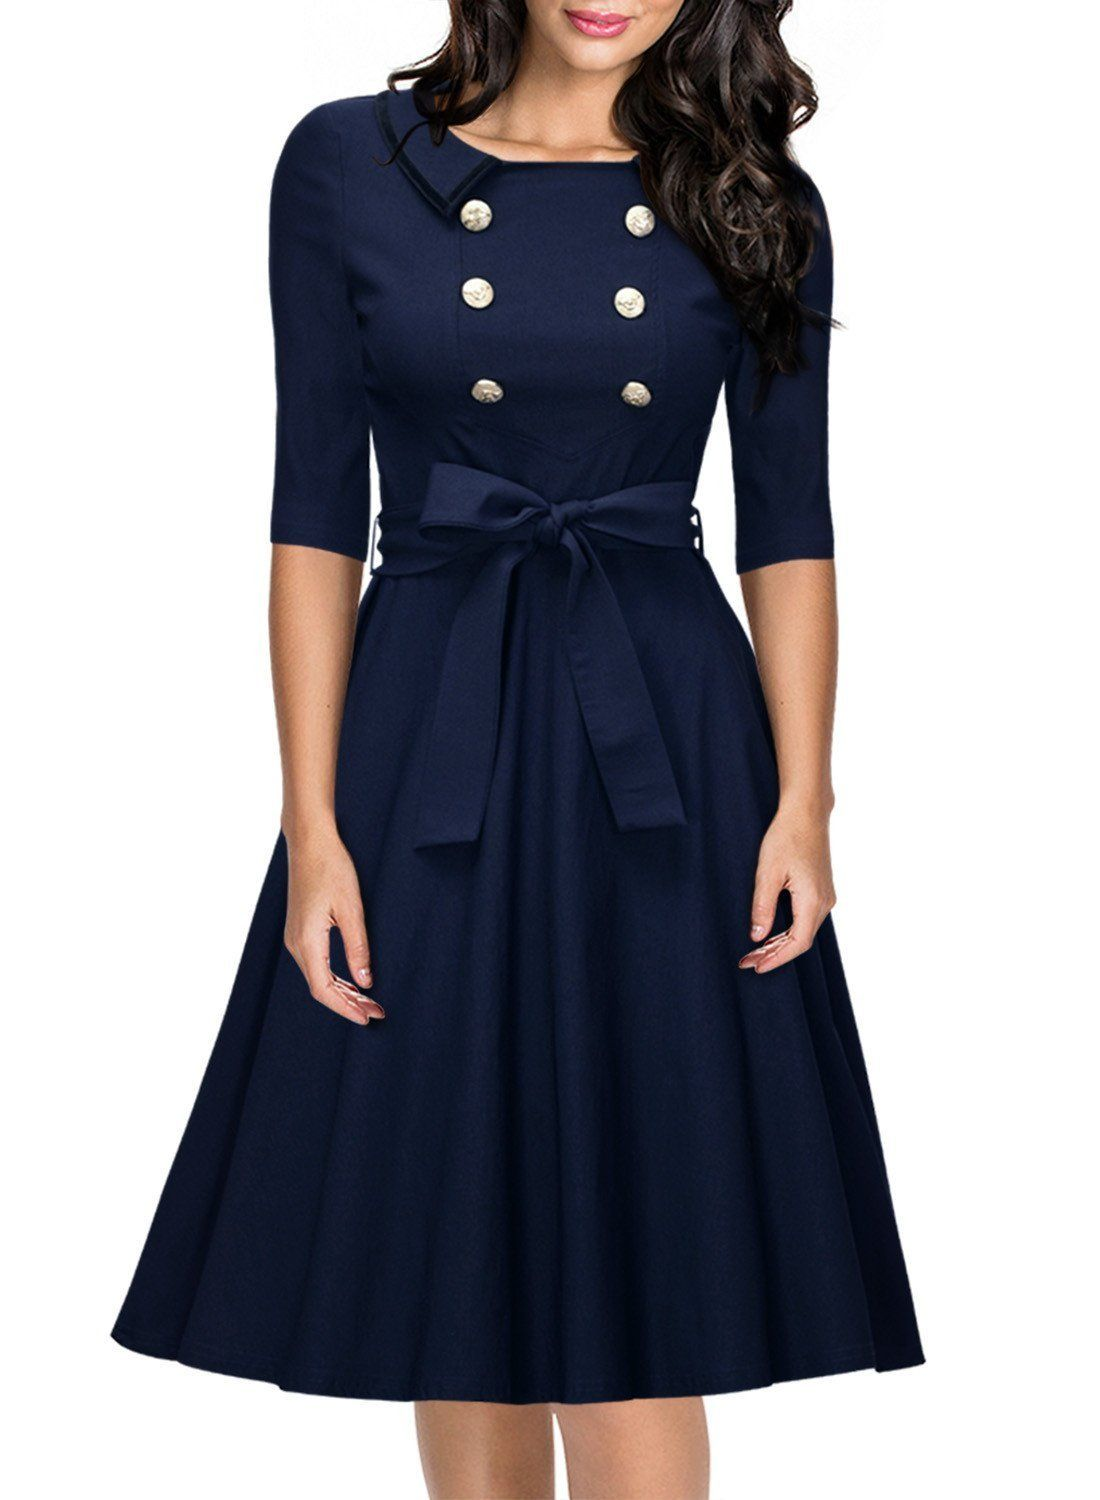 Miusol Women's 3/4 Sleeve Classy Casual Belted Vintage Retro Evening Swing  Dress Navy Blue